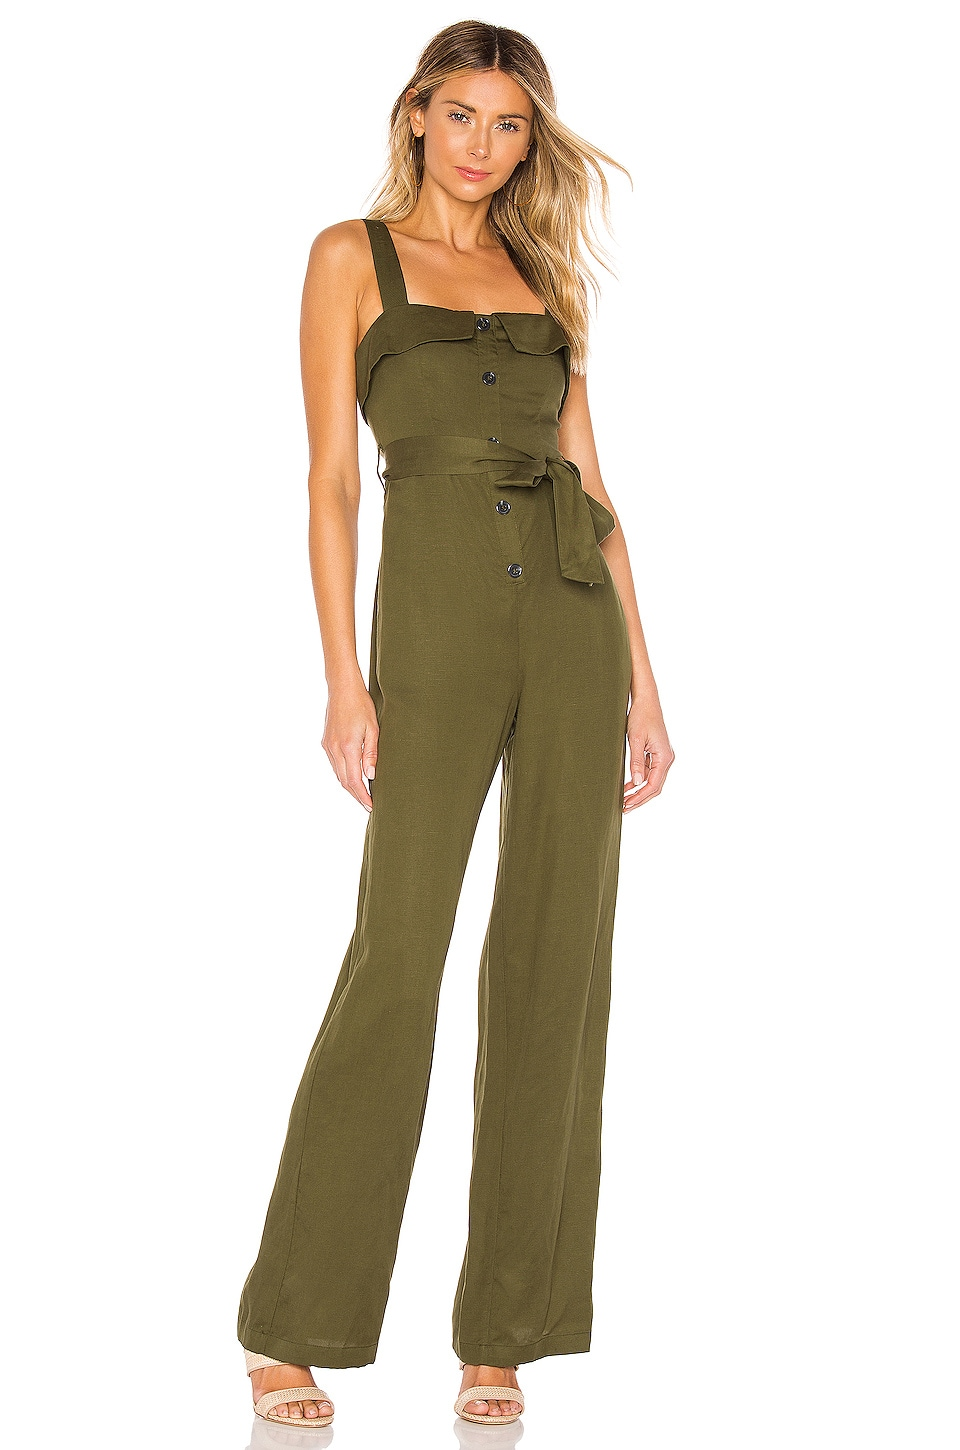 Lovers + Friends Arty Jumpsuit in Green